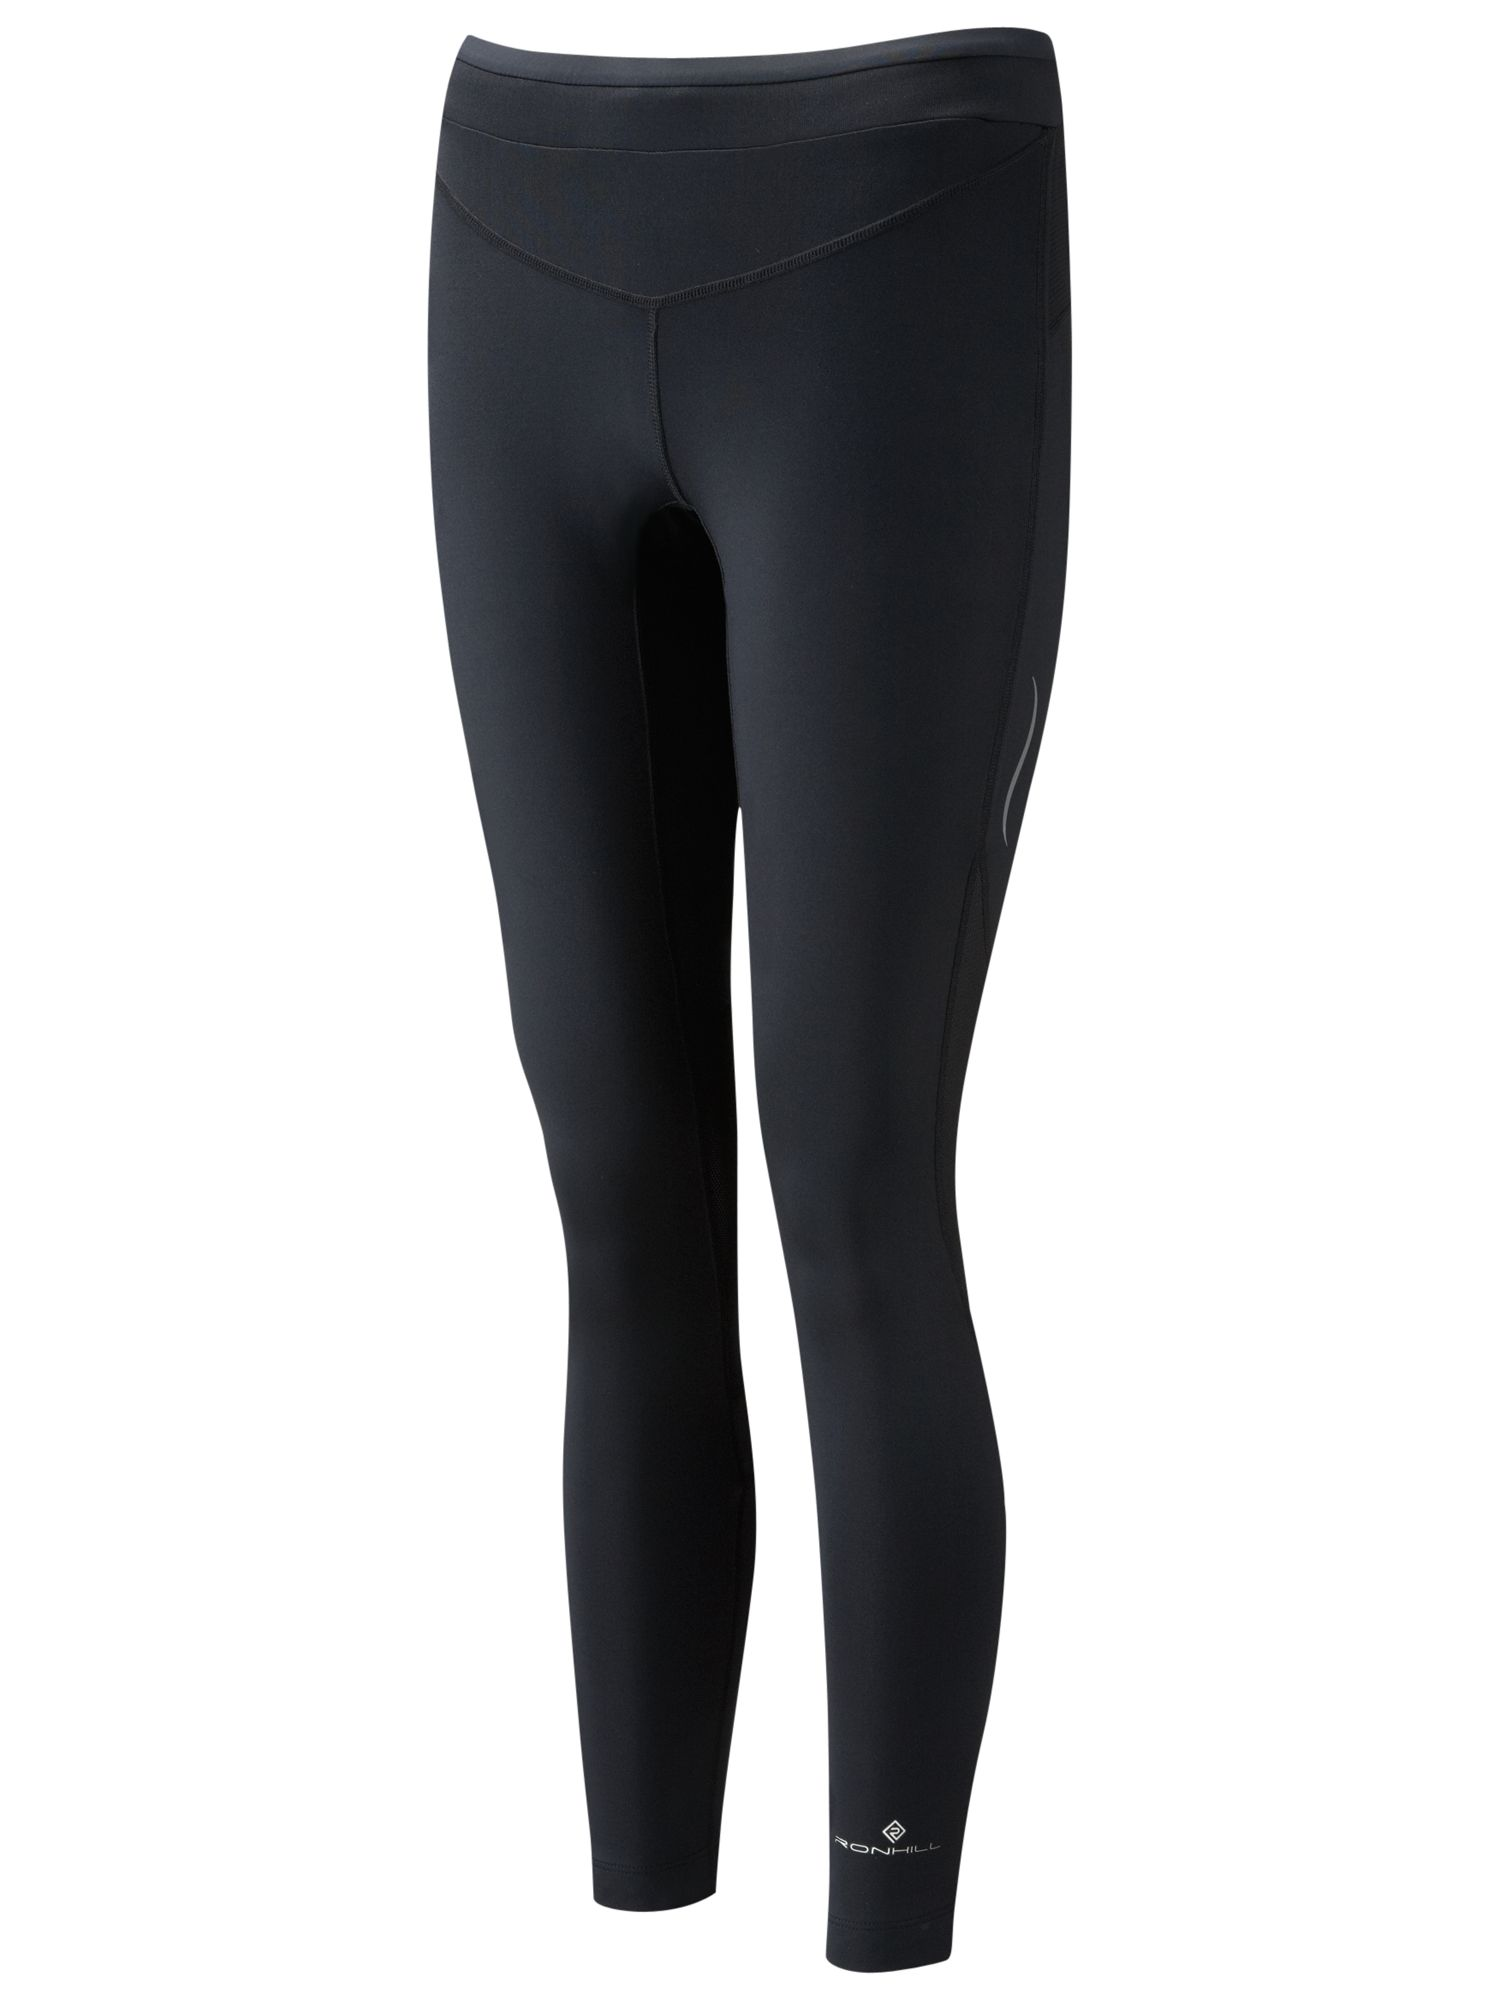 Ronhill Aspiration Contour Tights, Black